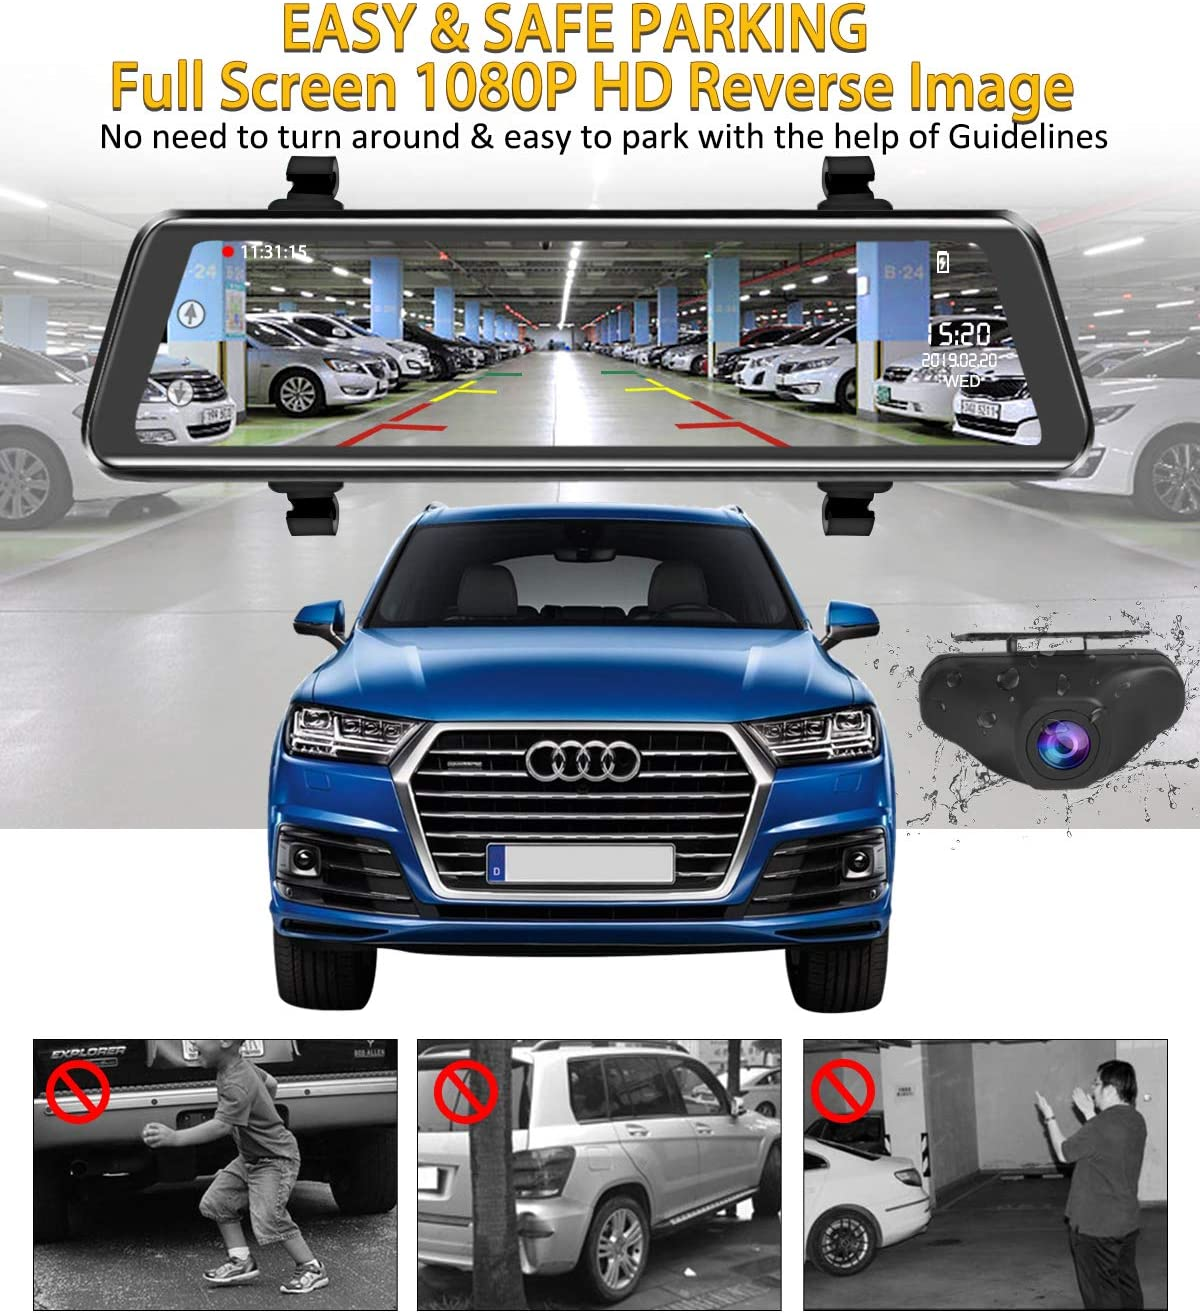 Mirror Dash Cam 9.88 inch Full Touch Screen Car Backup Camera Dual Recording HD Front 1080P 170/° Wide Angle 1080P Rear View Camera 150/° URVOLAX Night Vision,24-Hour Parking,GPS SD Card